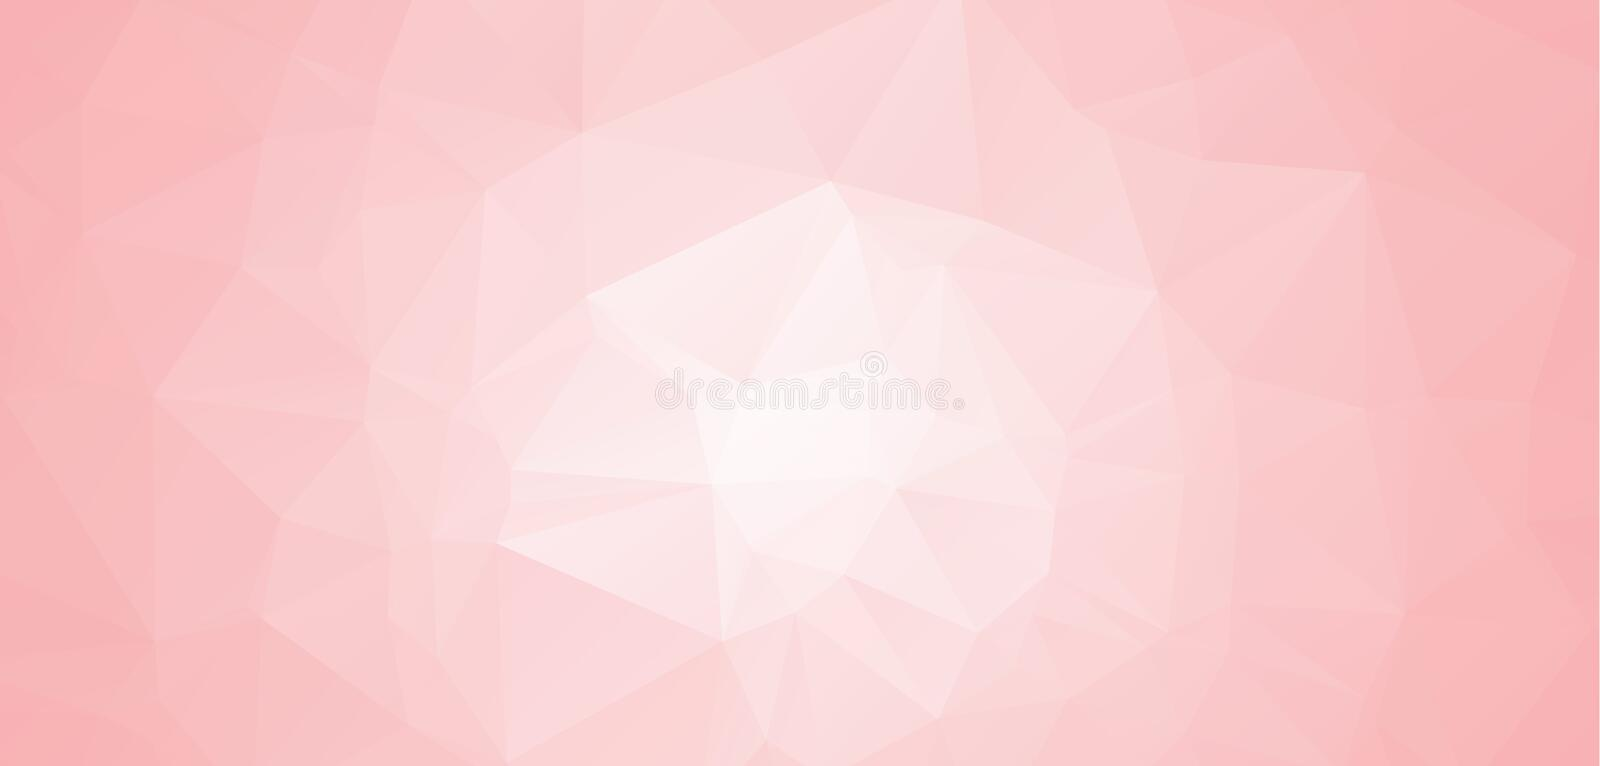 Milieux géométriques abstraits roses et blancs abstraits Vecteur polygonal Illustration polygonale abstraite, qui se composent du illustration stock